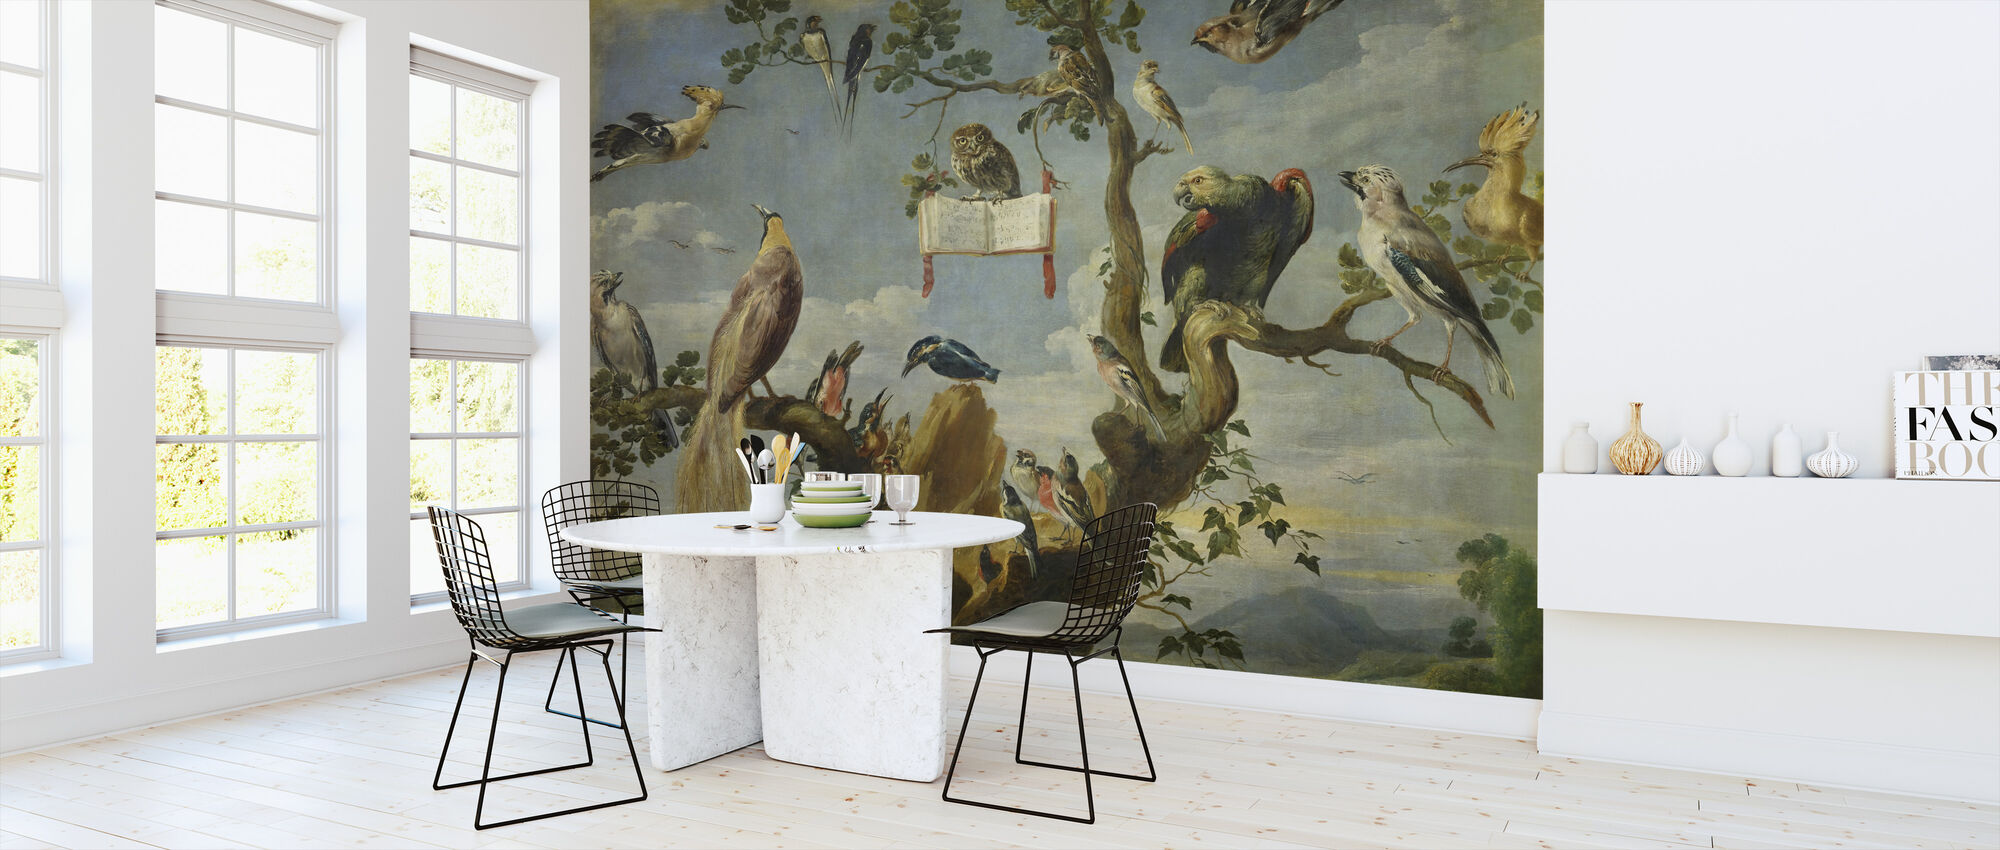 Concert of the Birds - Frans Snyders - Wallpaper - Kitchen